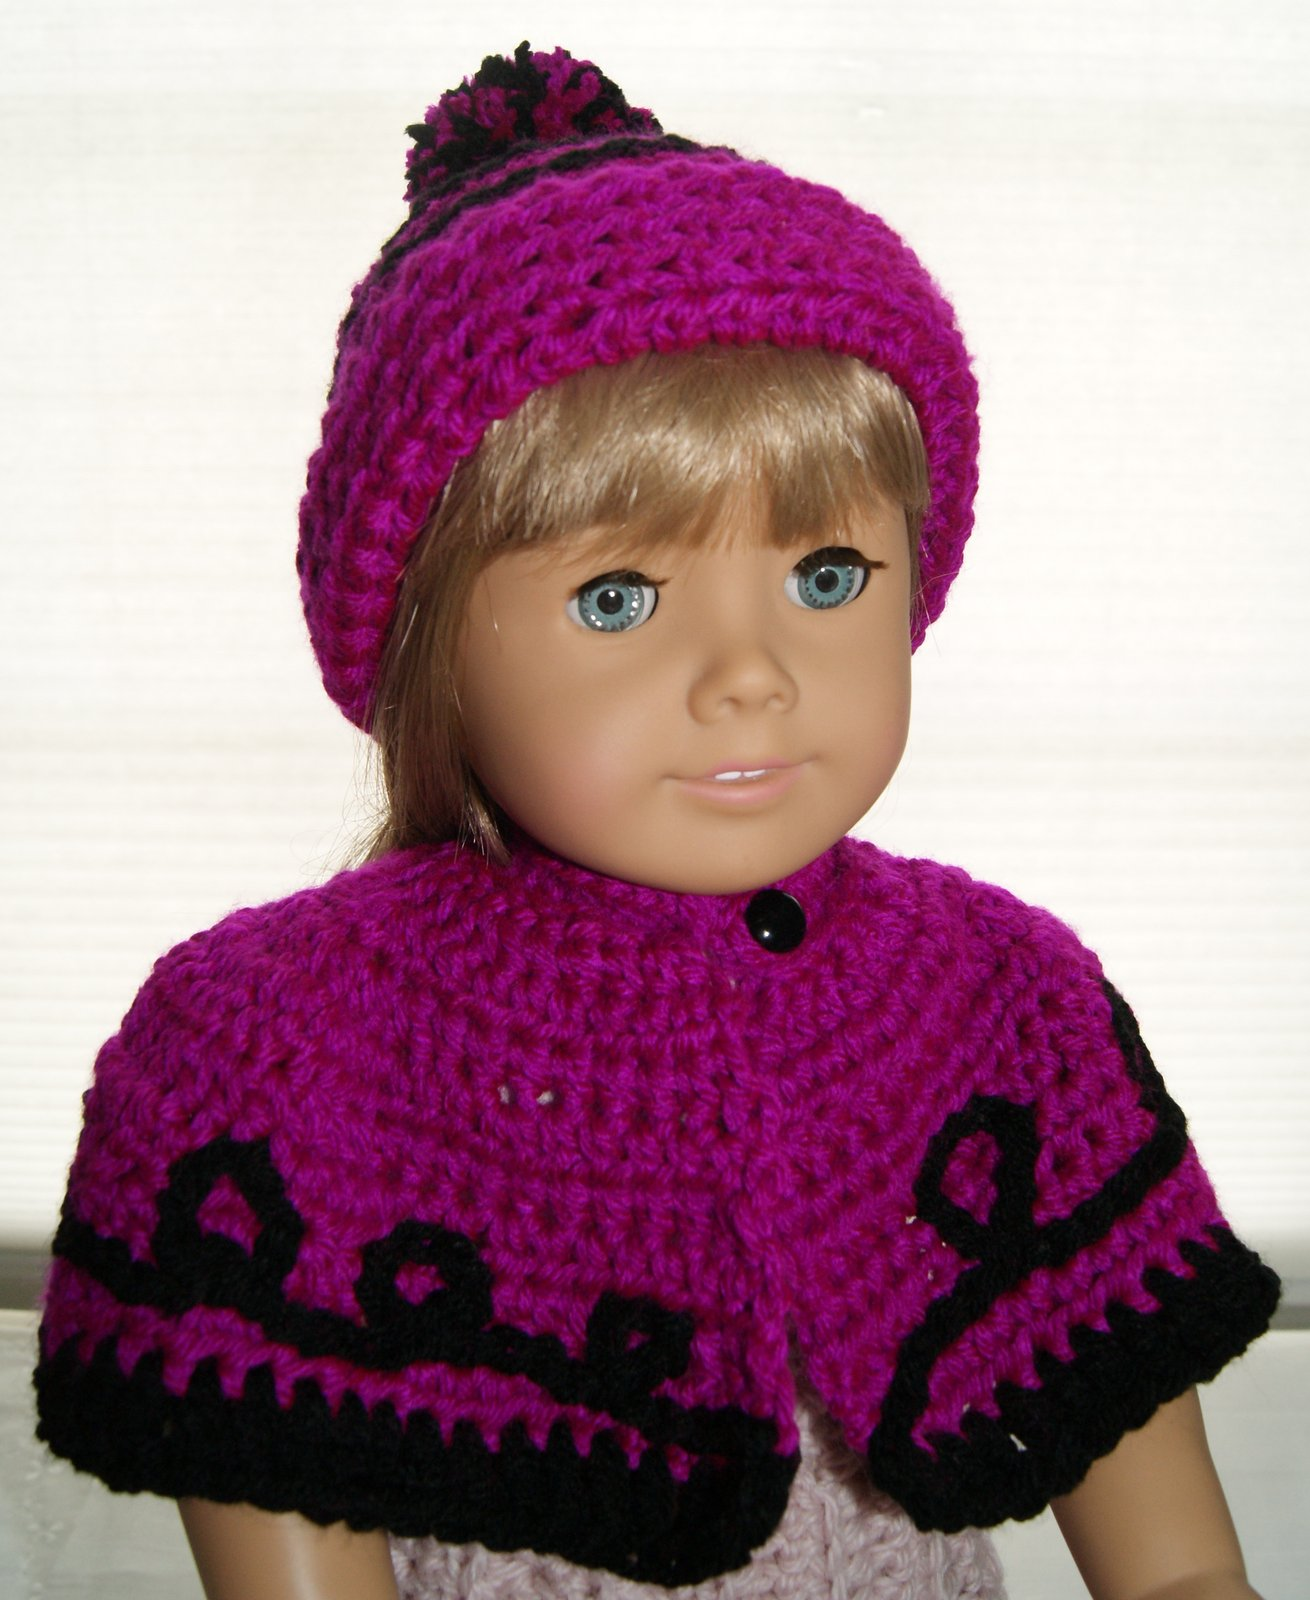 Crochet Outfit For 18″ Doll